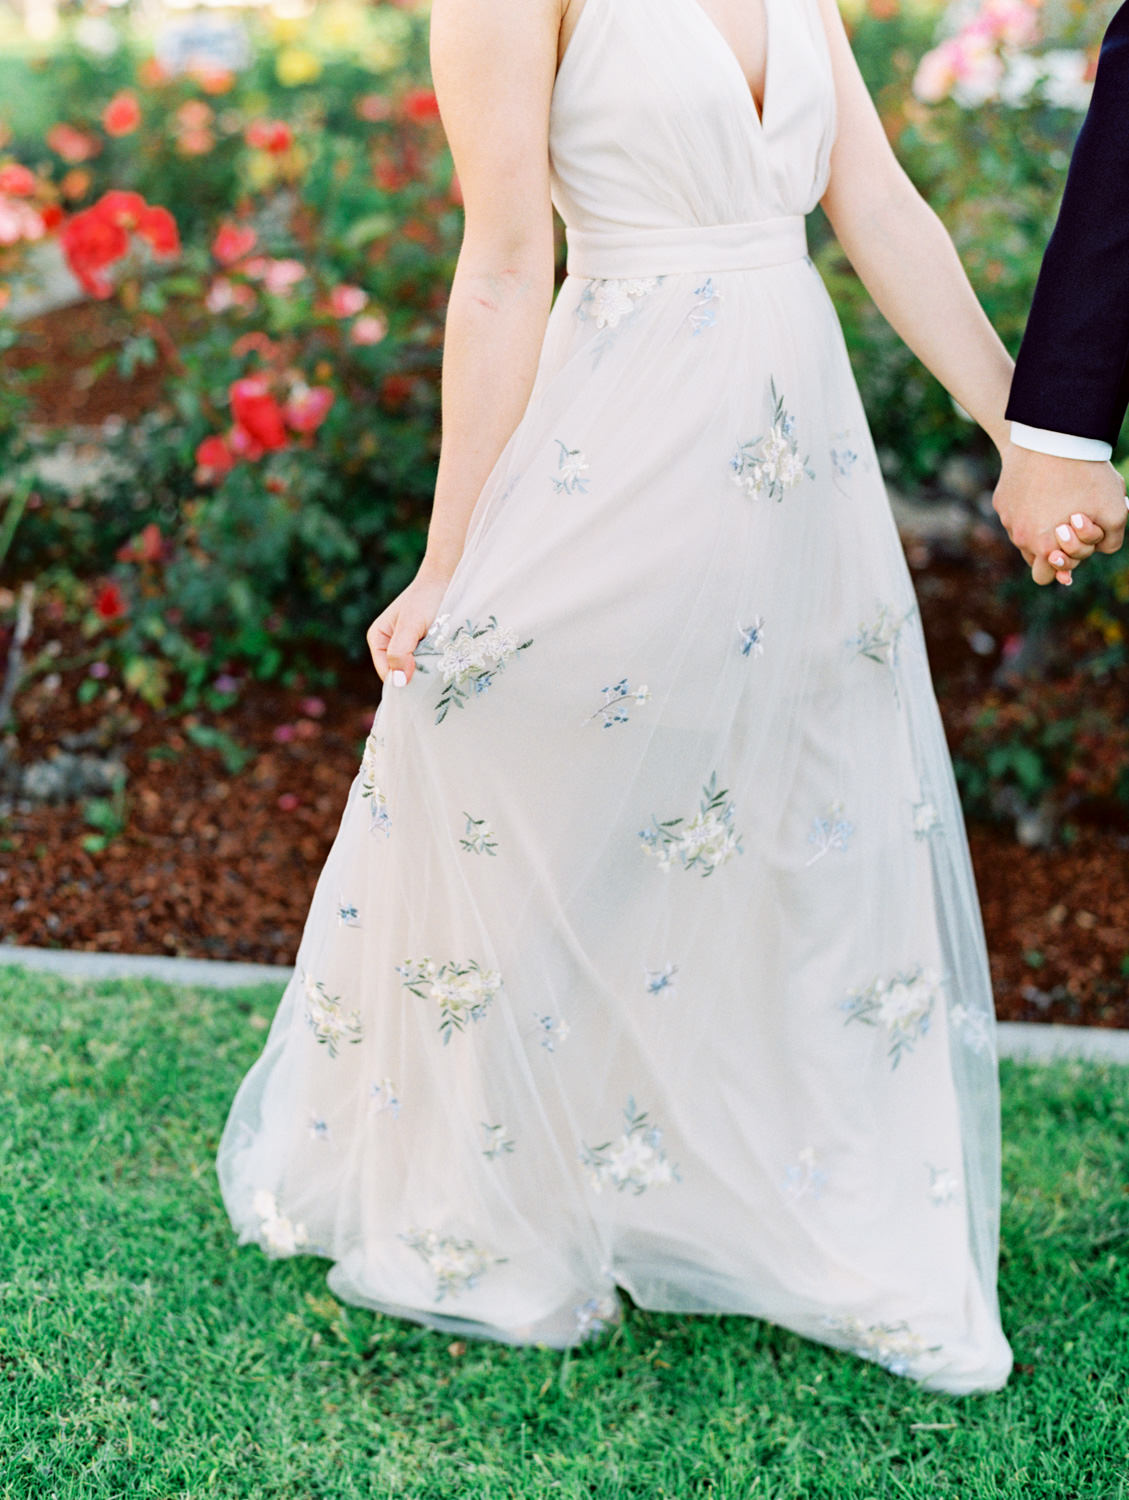 Bride with ivory and blush rose bouquet and floral print dress and groom in suit and tie in front of a rose garden. Coronado Centennial Park Engagement Photo by Cavin Elizabeth Photography - San Diego film photographer